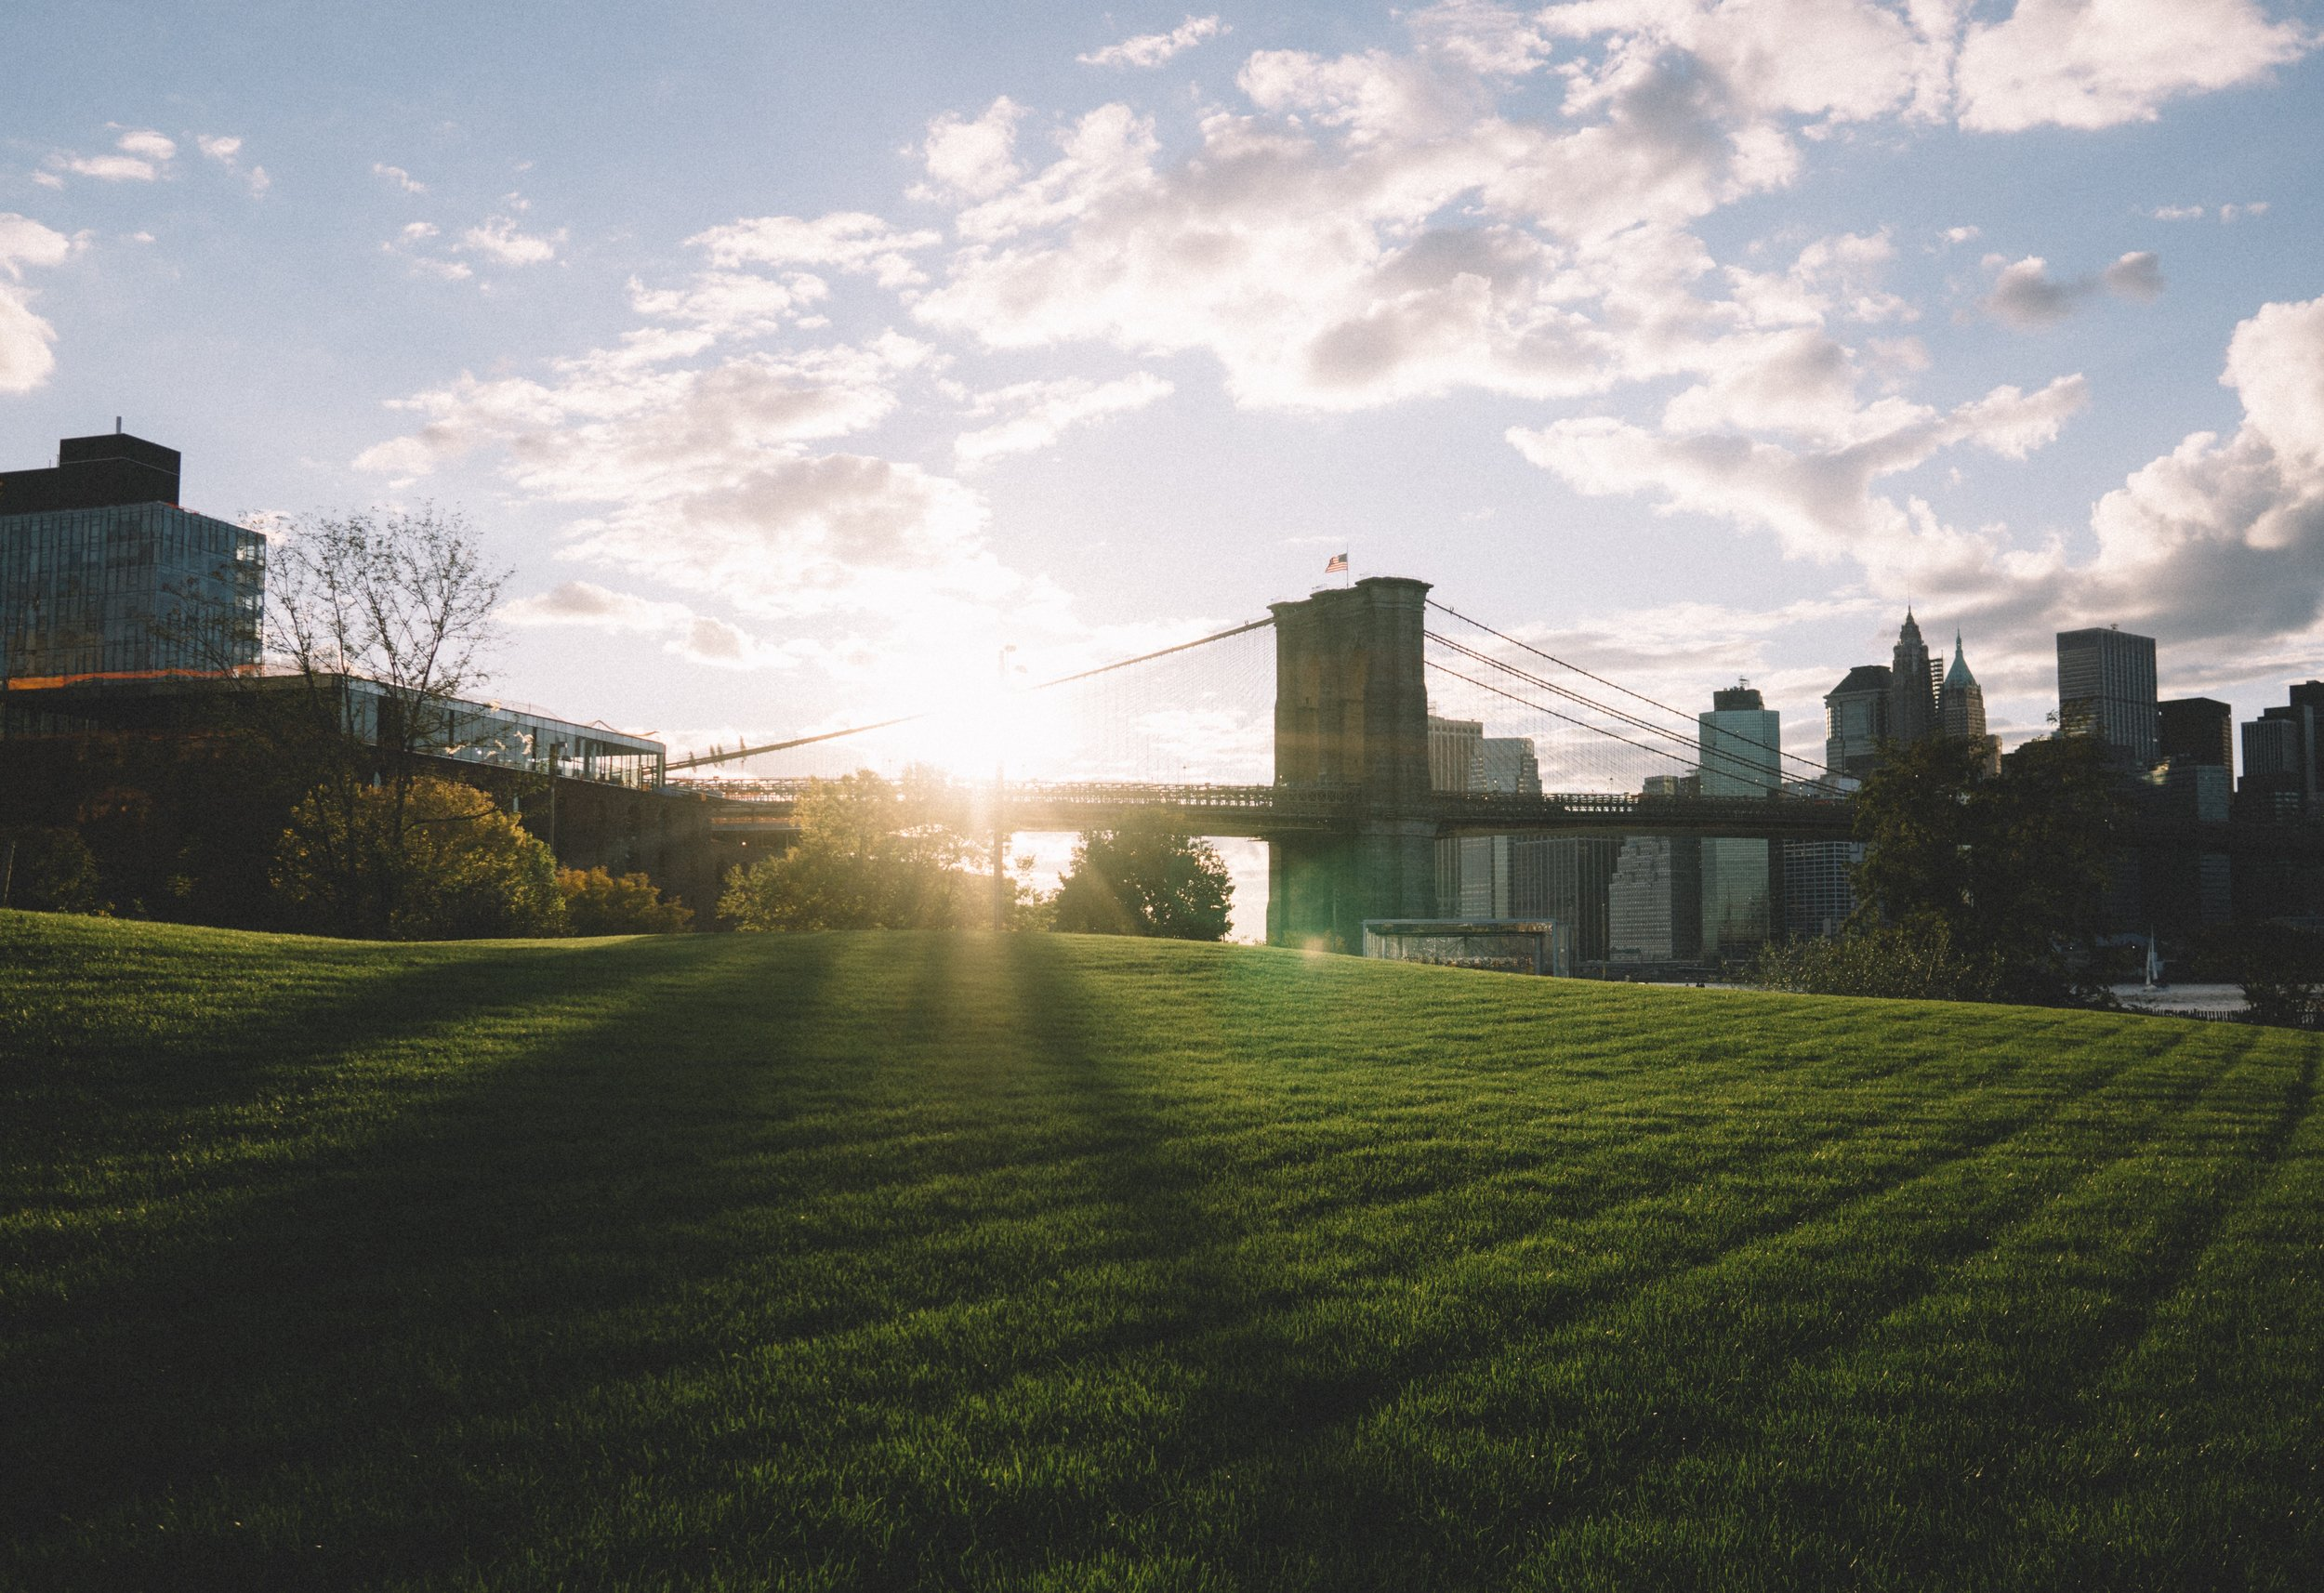 Location - We're an outdoor facility located inside the iconic Brooklyn Bridge Park at 99 Plymouth Street, under the Manhattan Bridge.